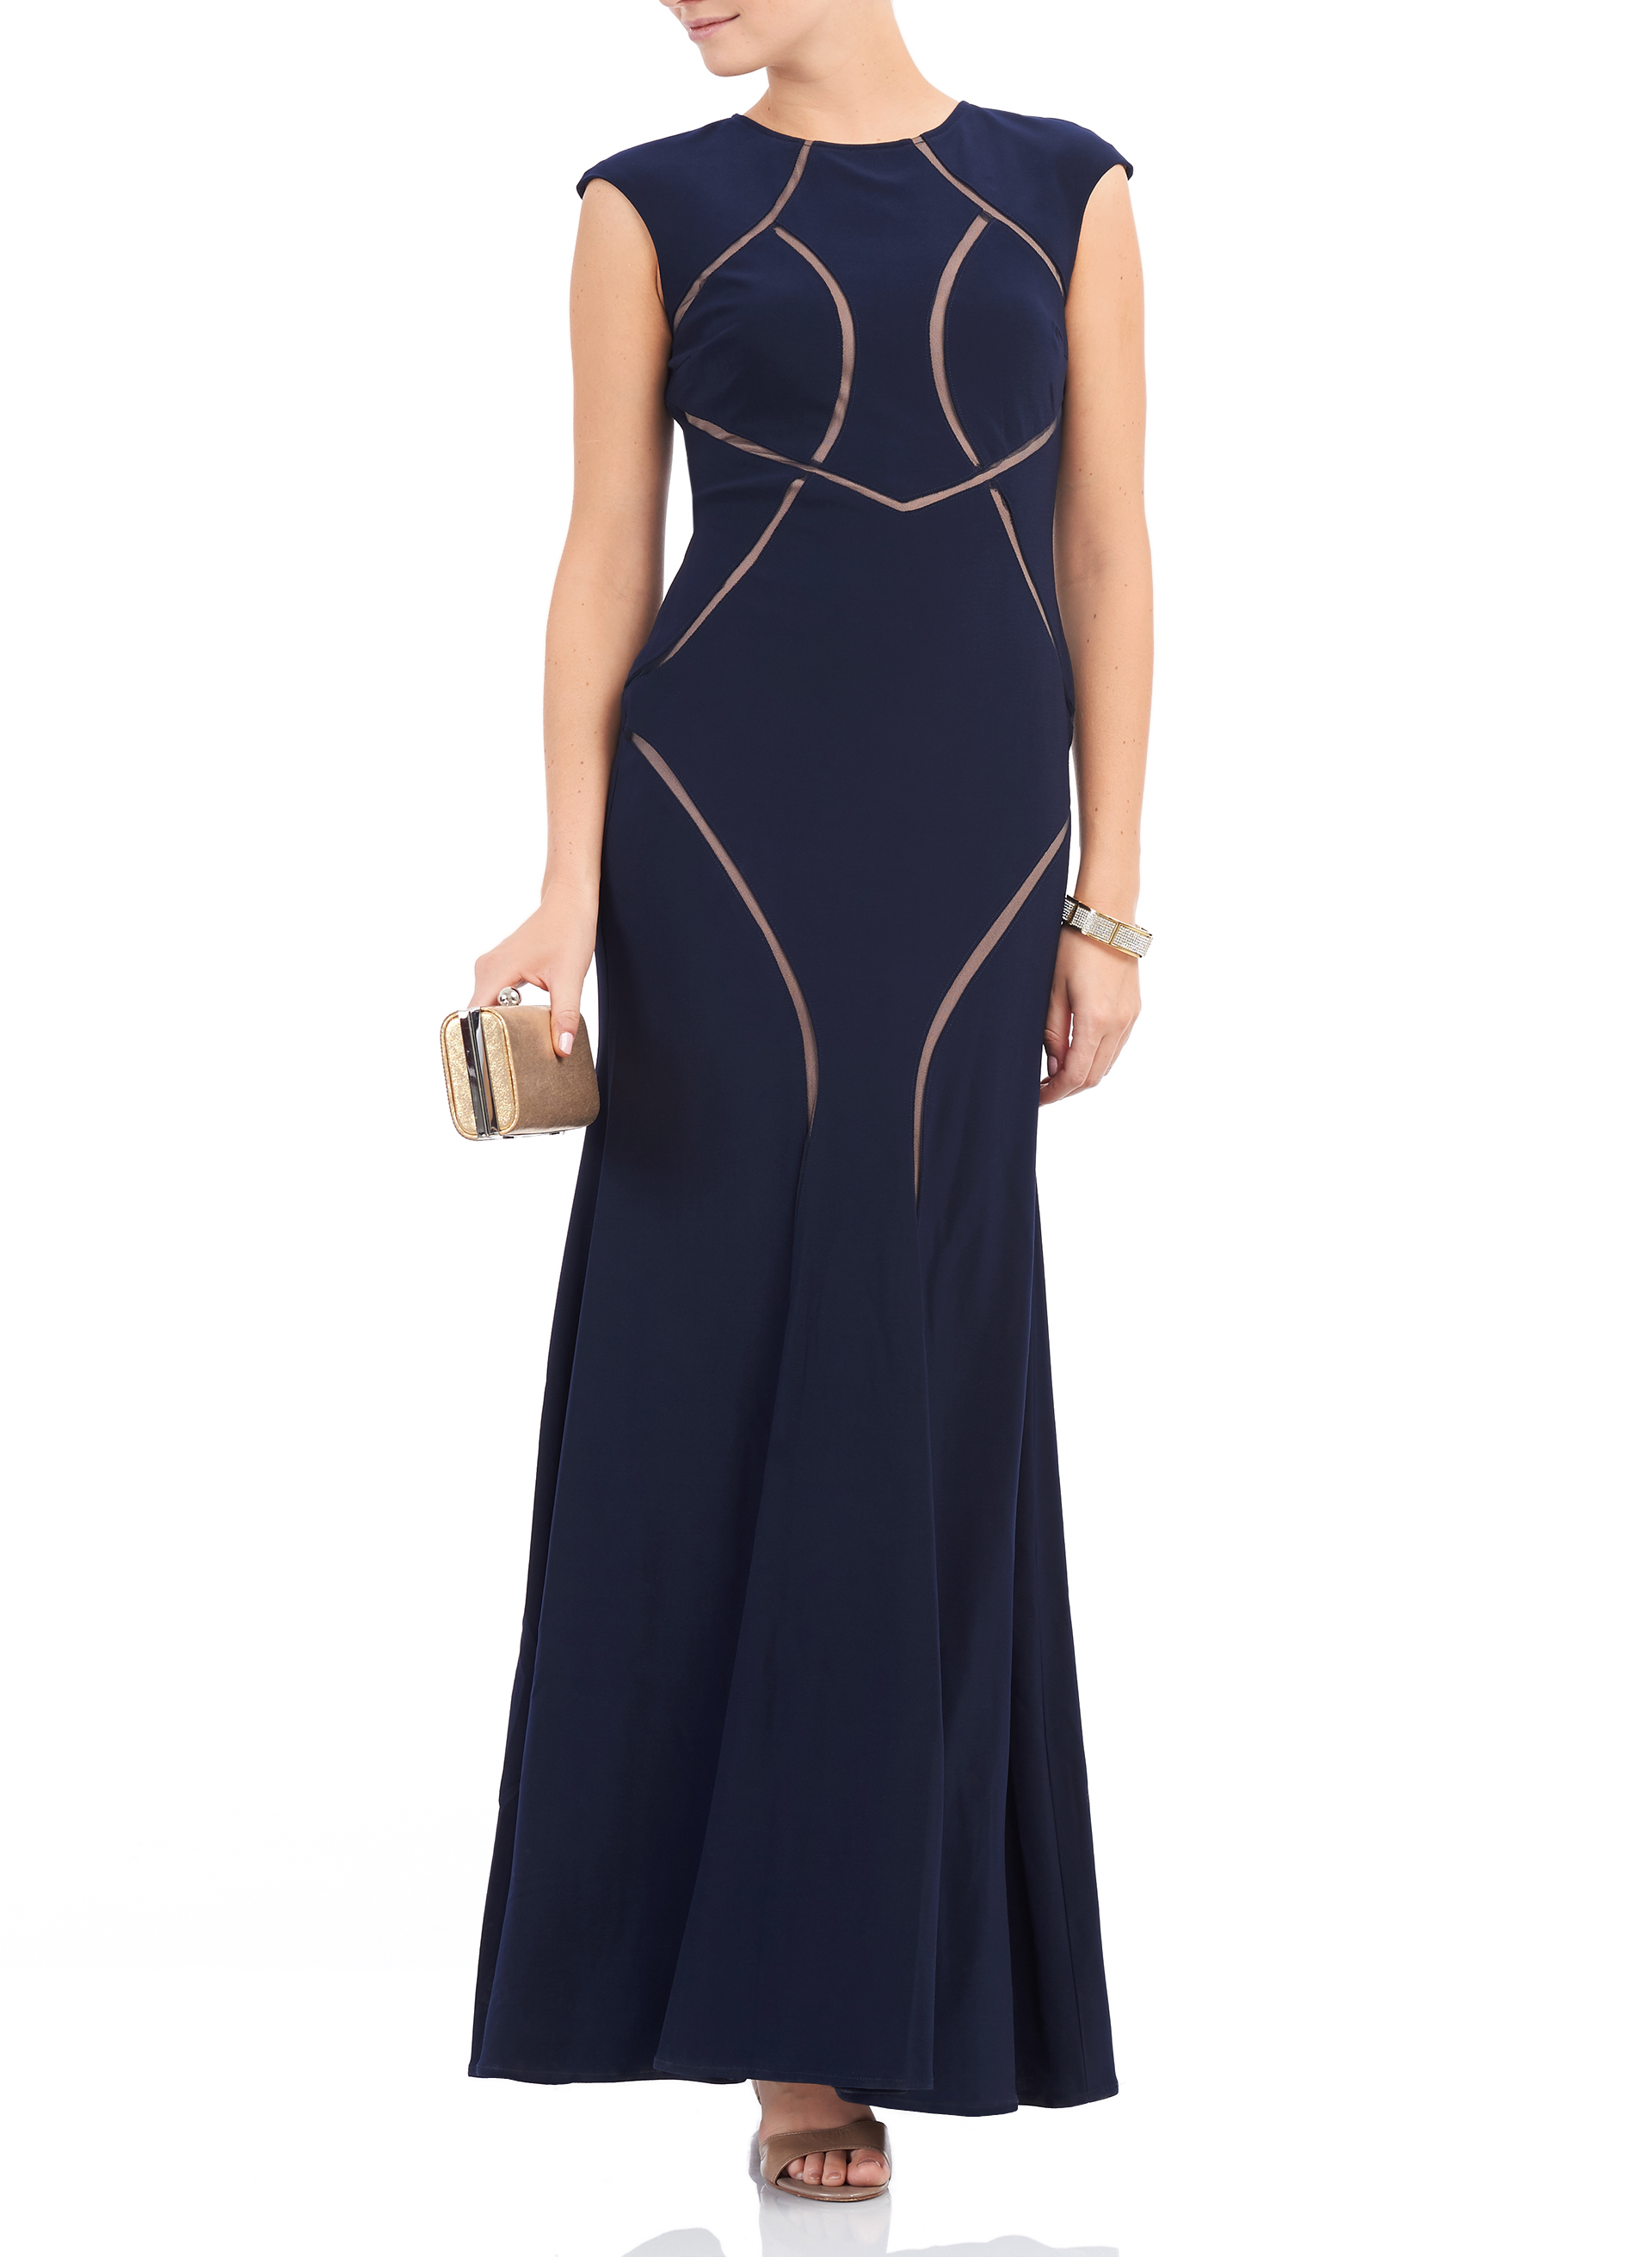 Extended sleeve jersey mesh gown free shipping melanie lyne